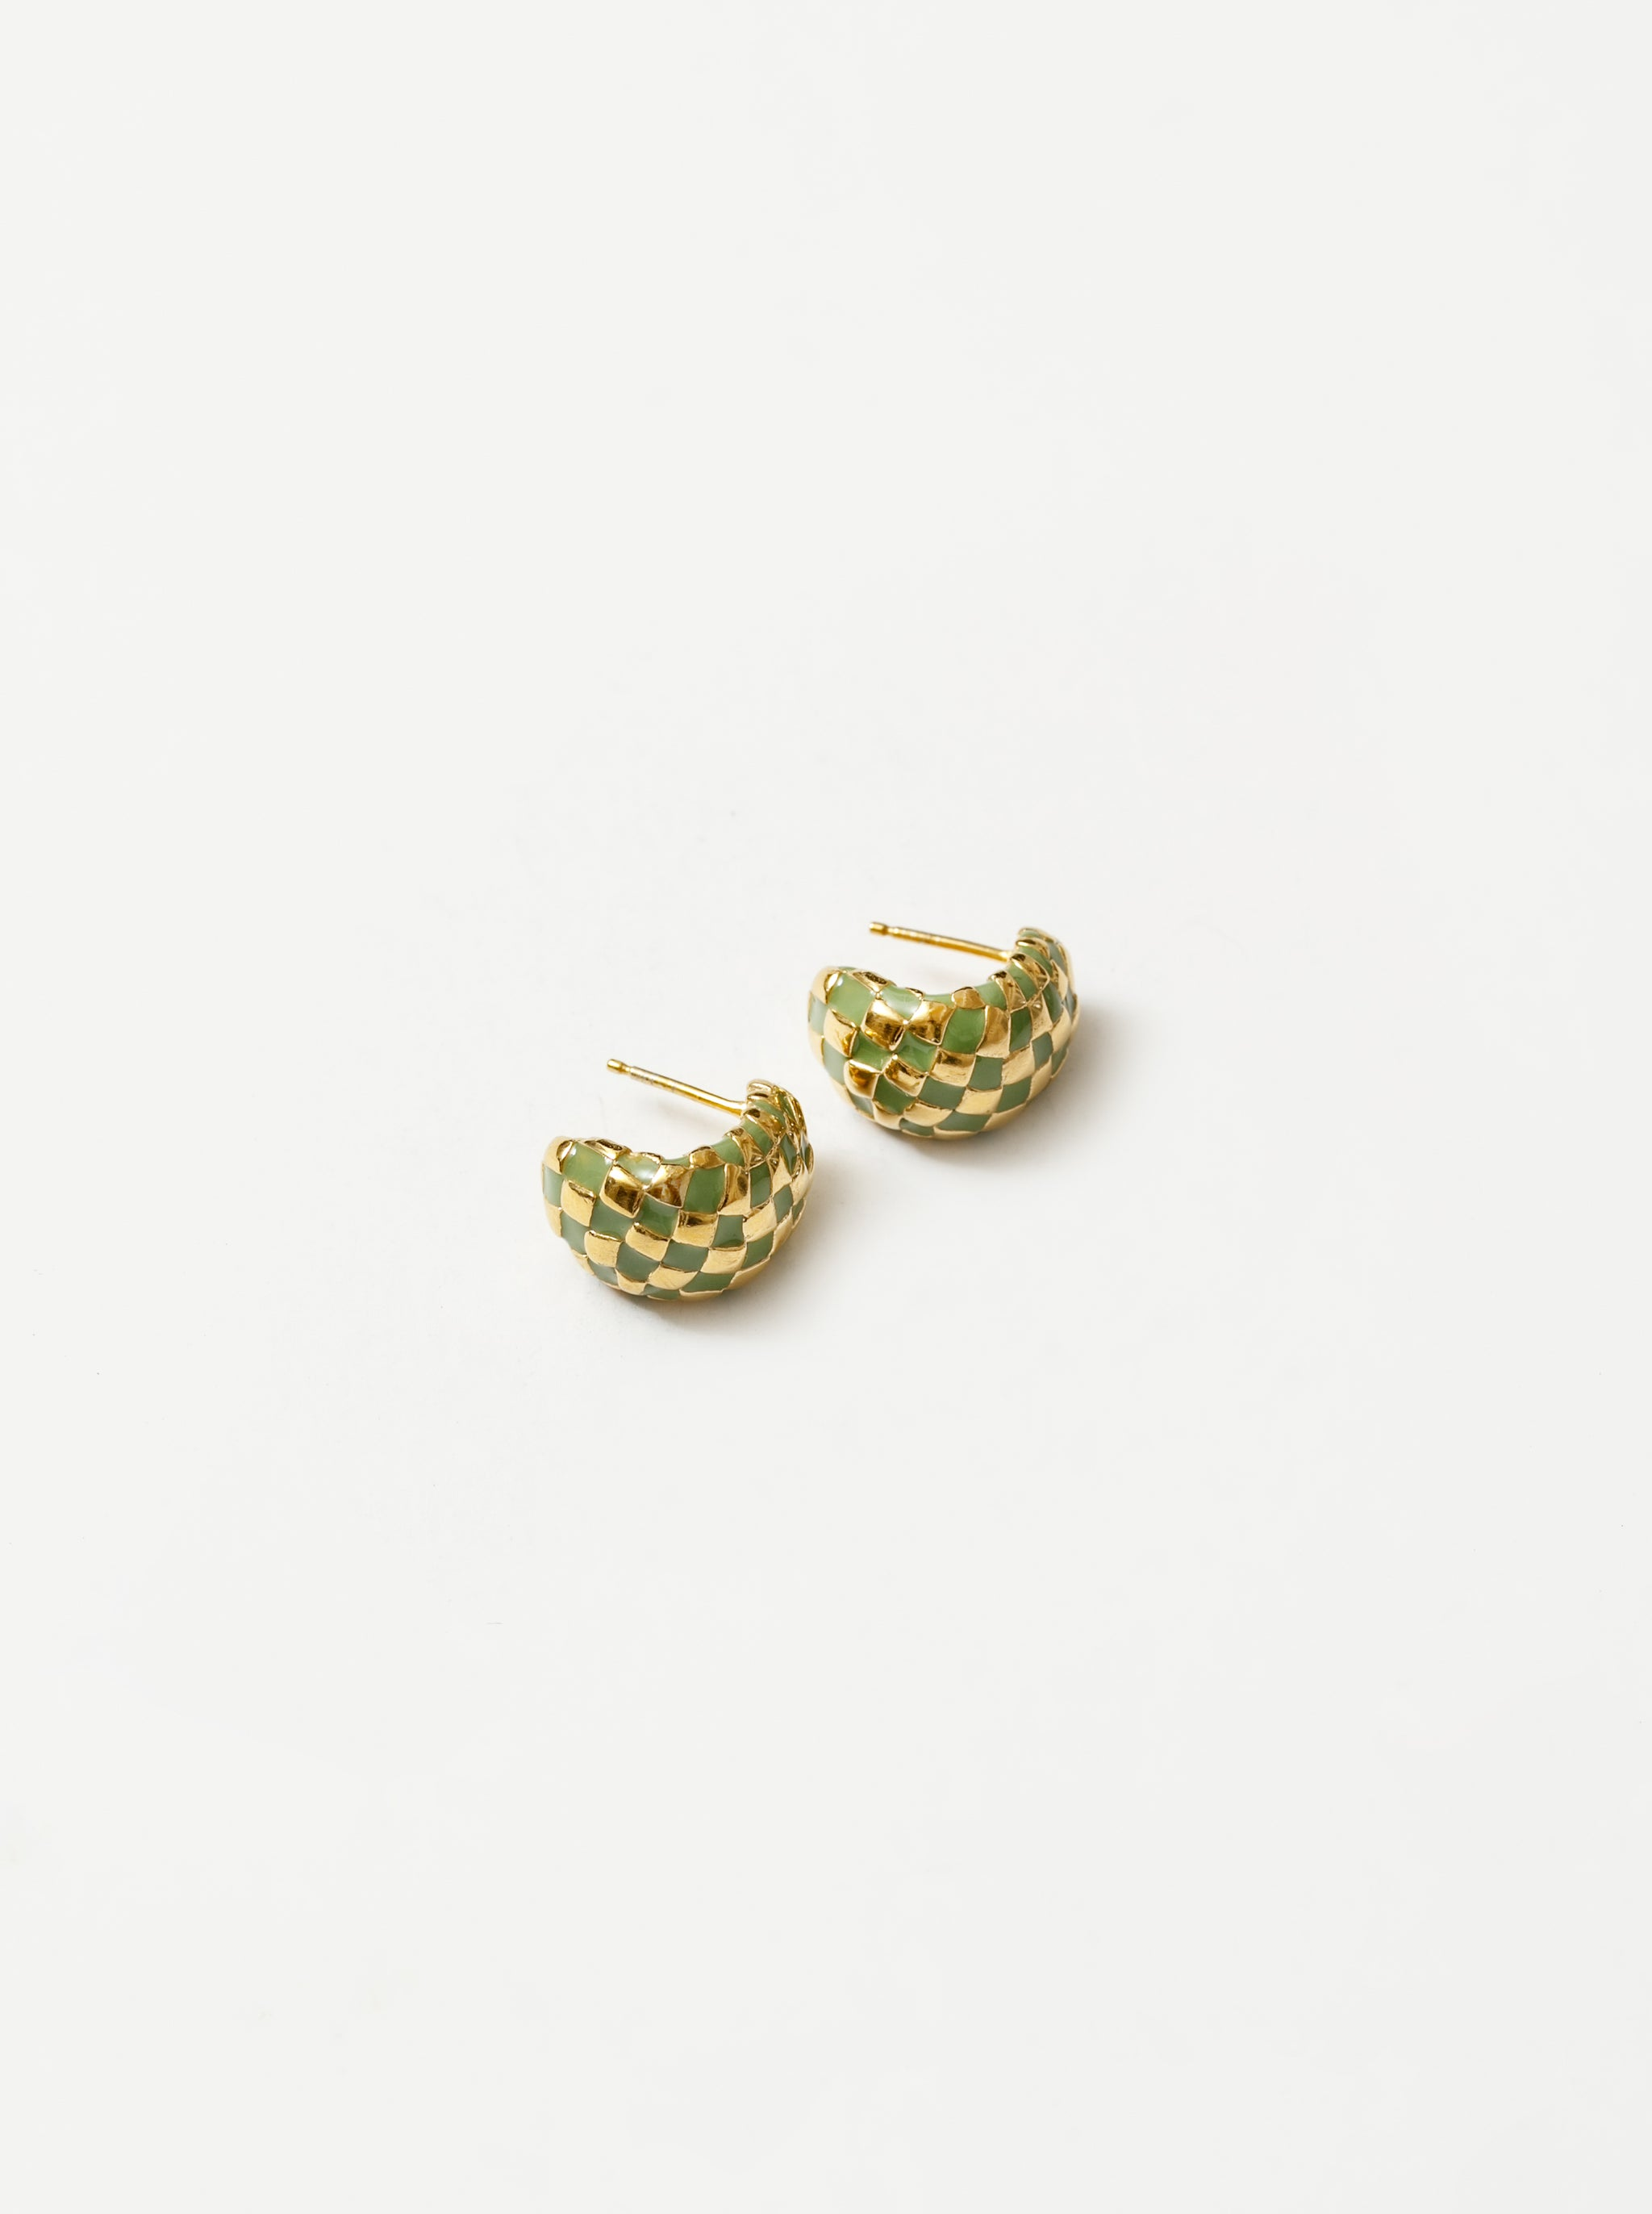 Nellie Earrings in Green and Gold